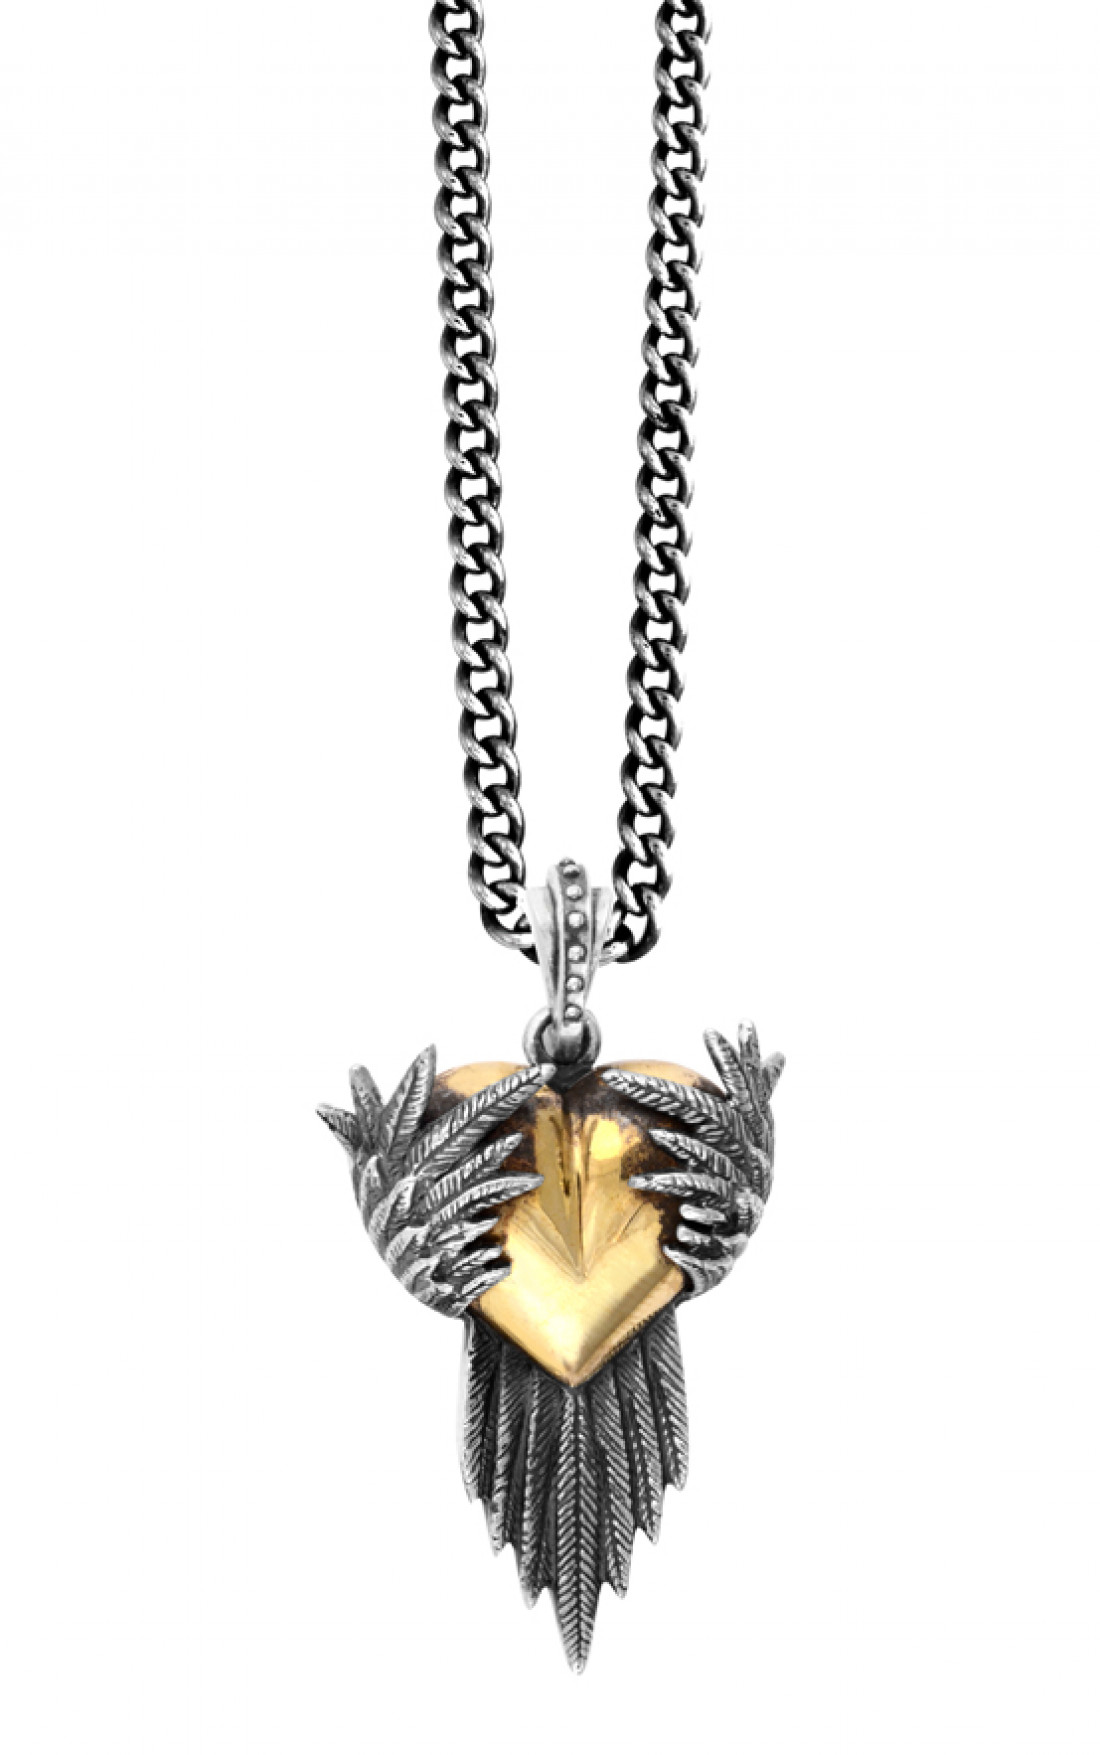 King Baby - Alloy Heart Pendant with Silver Raven Wings  (K10-5516)